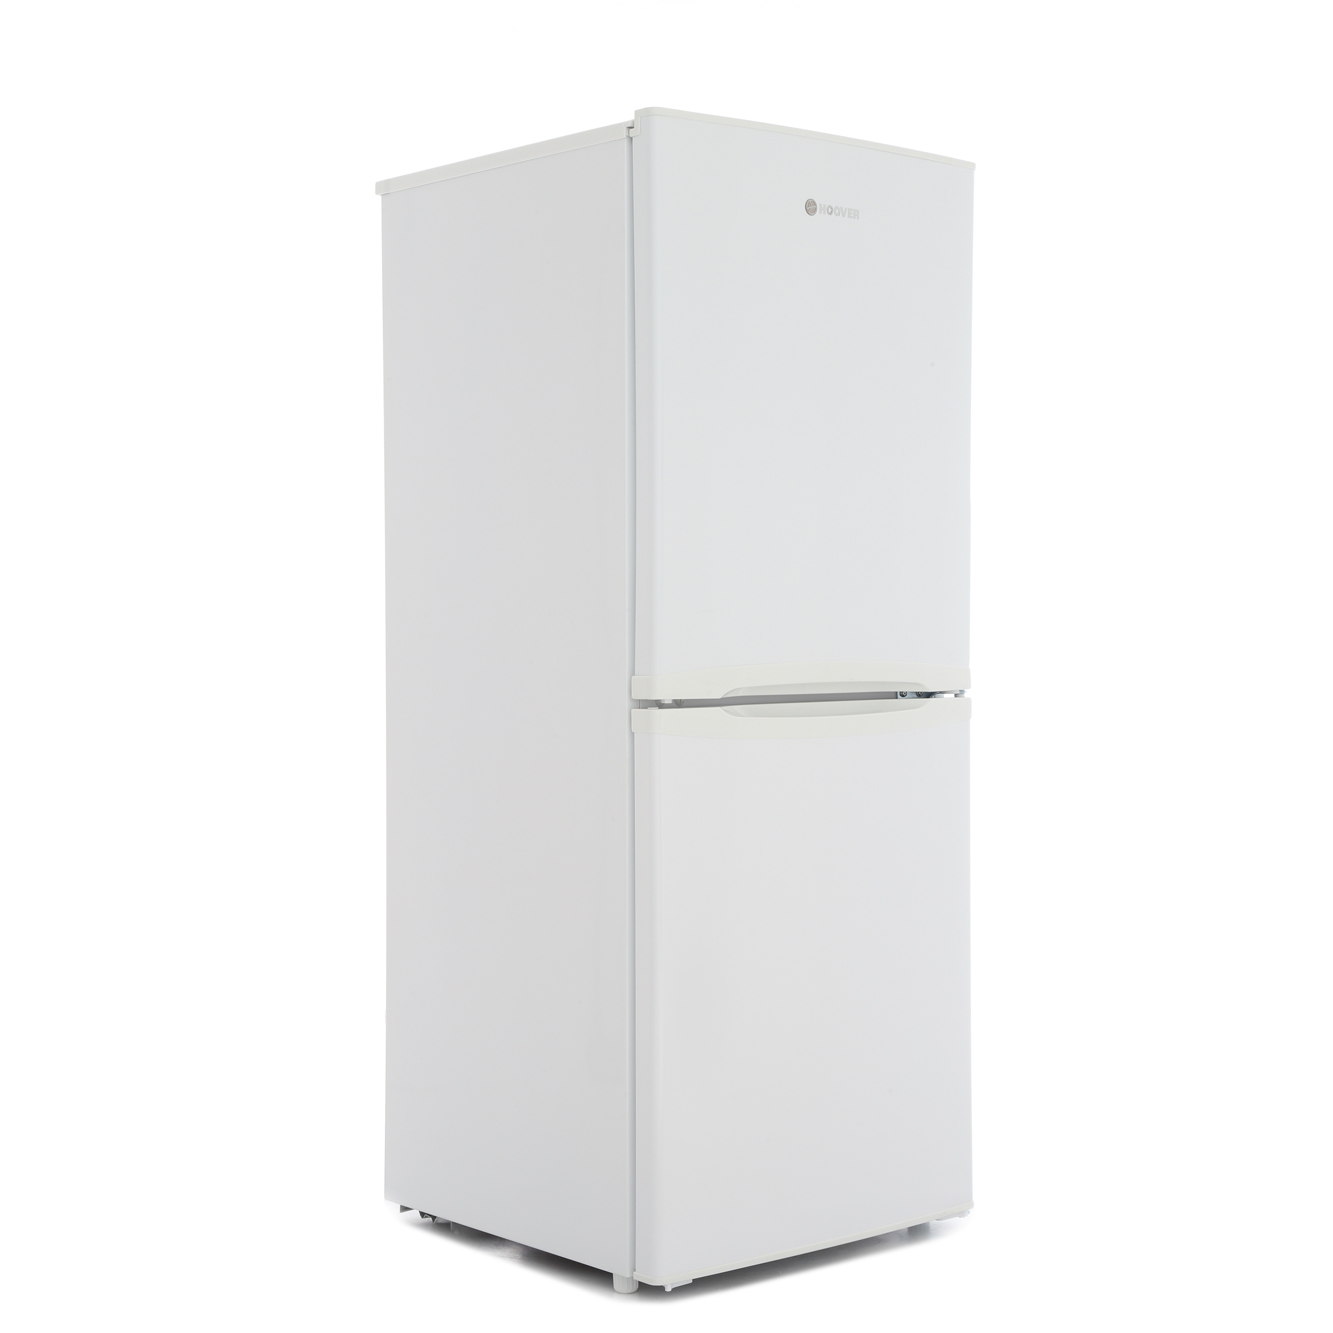 Hoover HSC536W Static Fridge Freezer